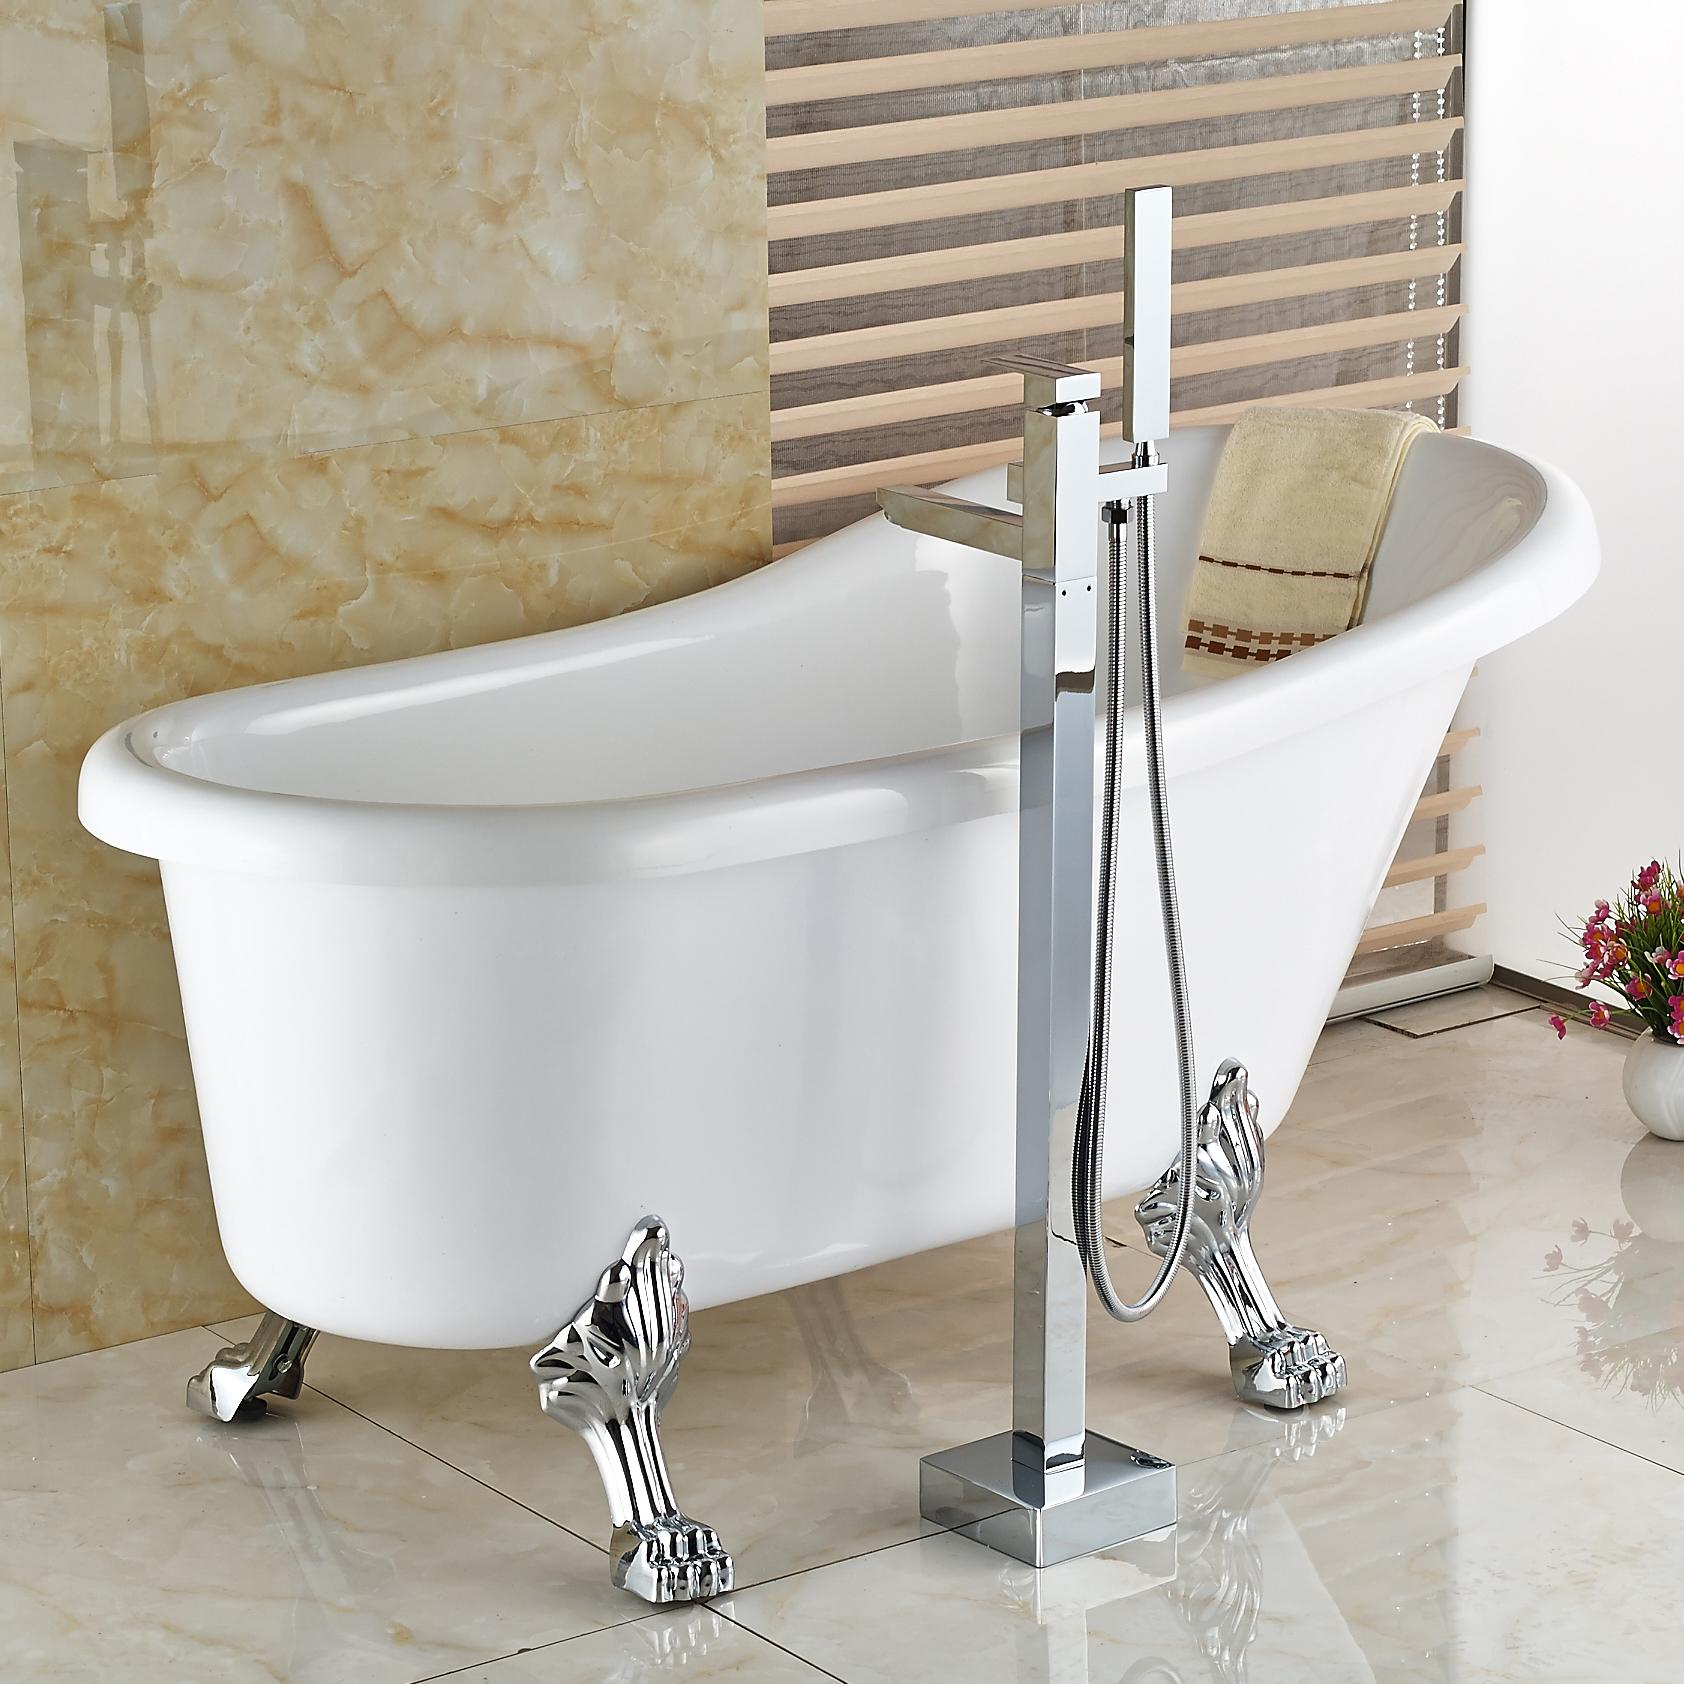 2018 Wholesale And Retail New Chrome Floor Mount Bath Tub Filler ...